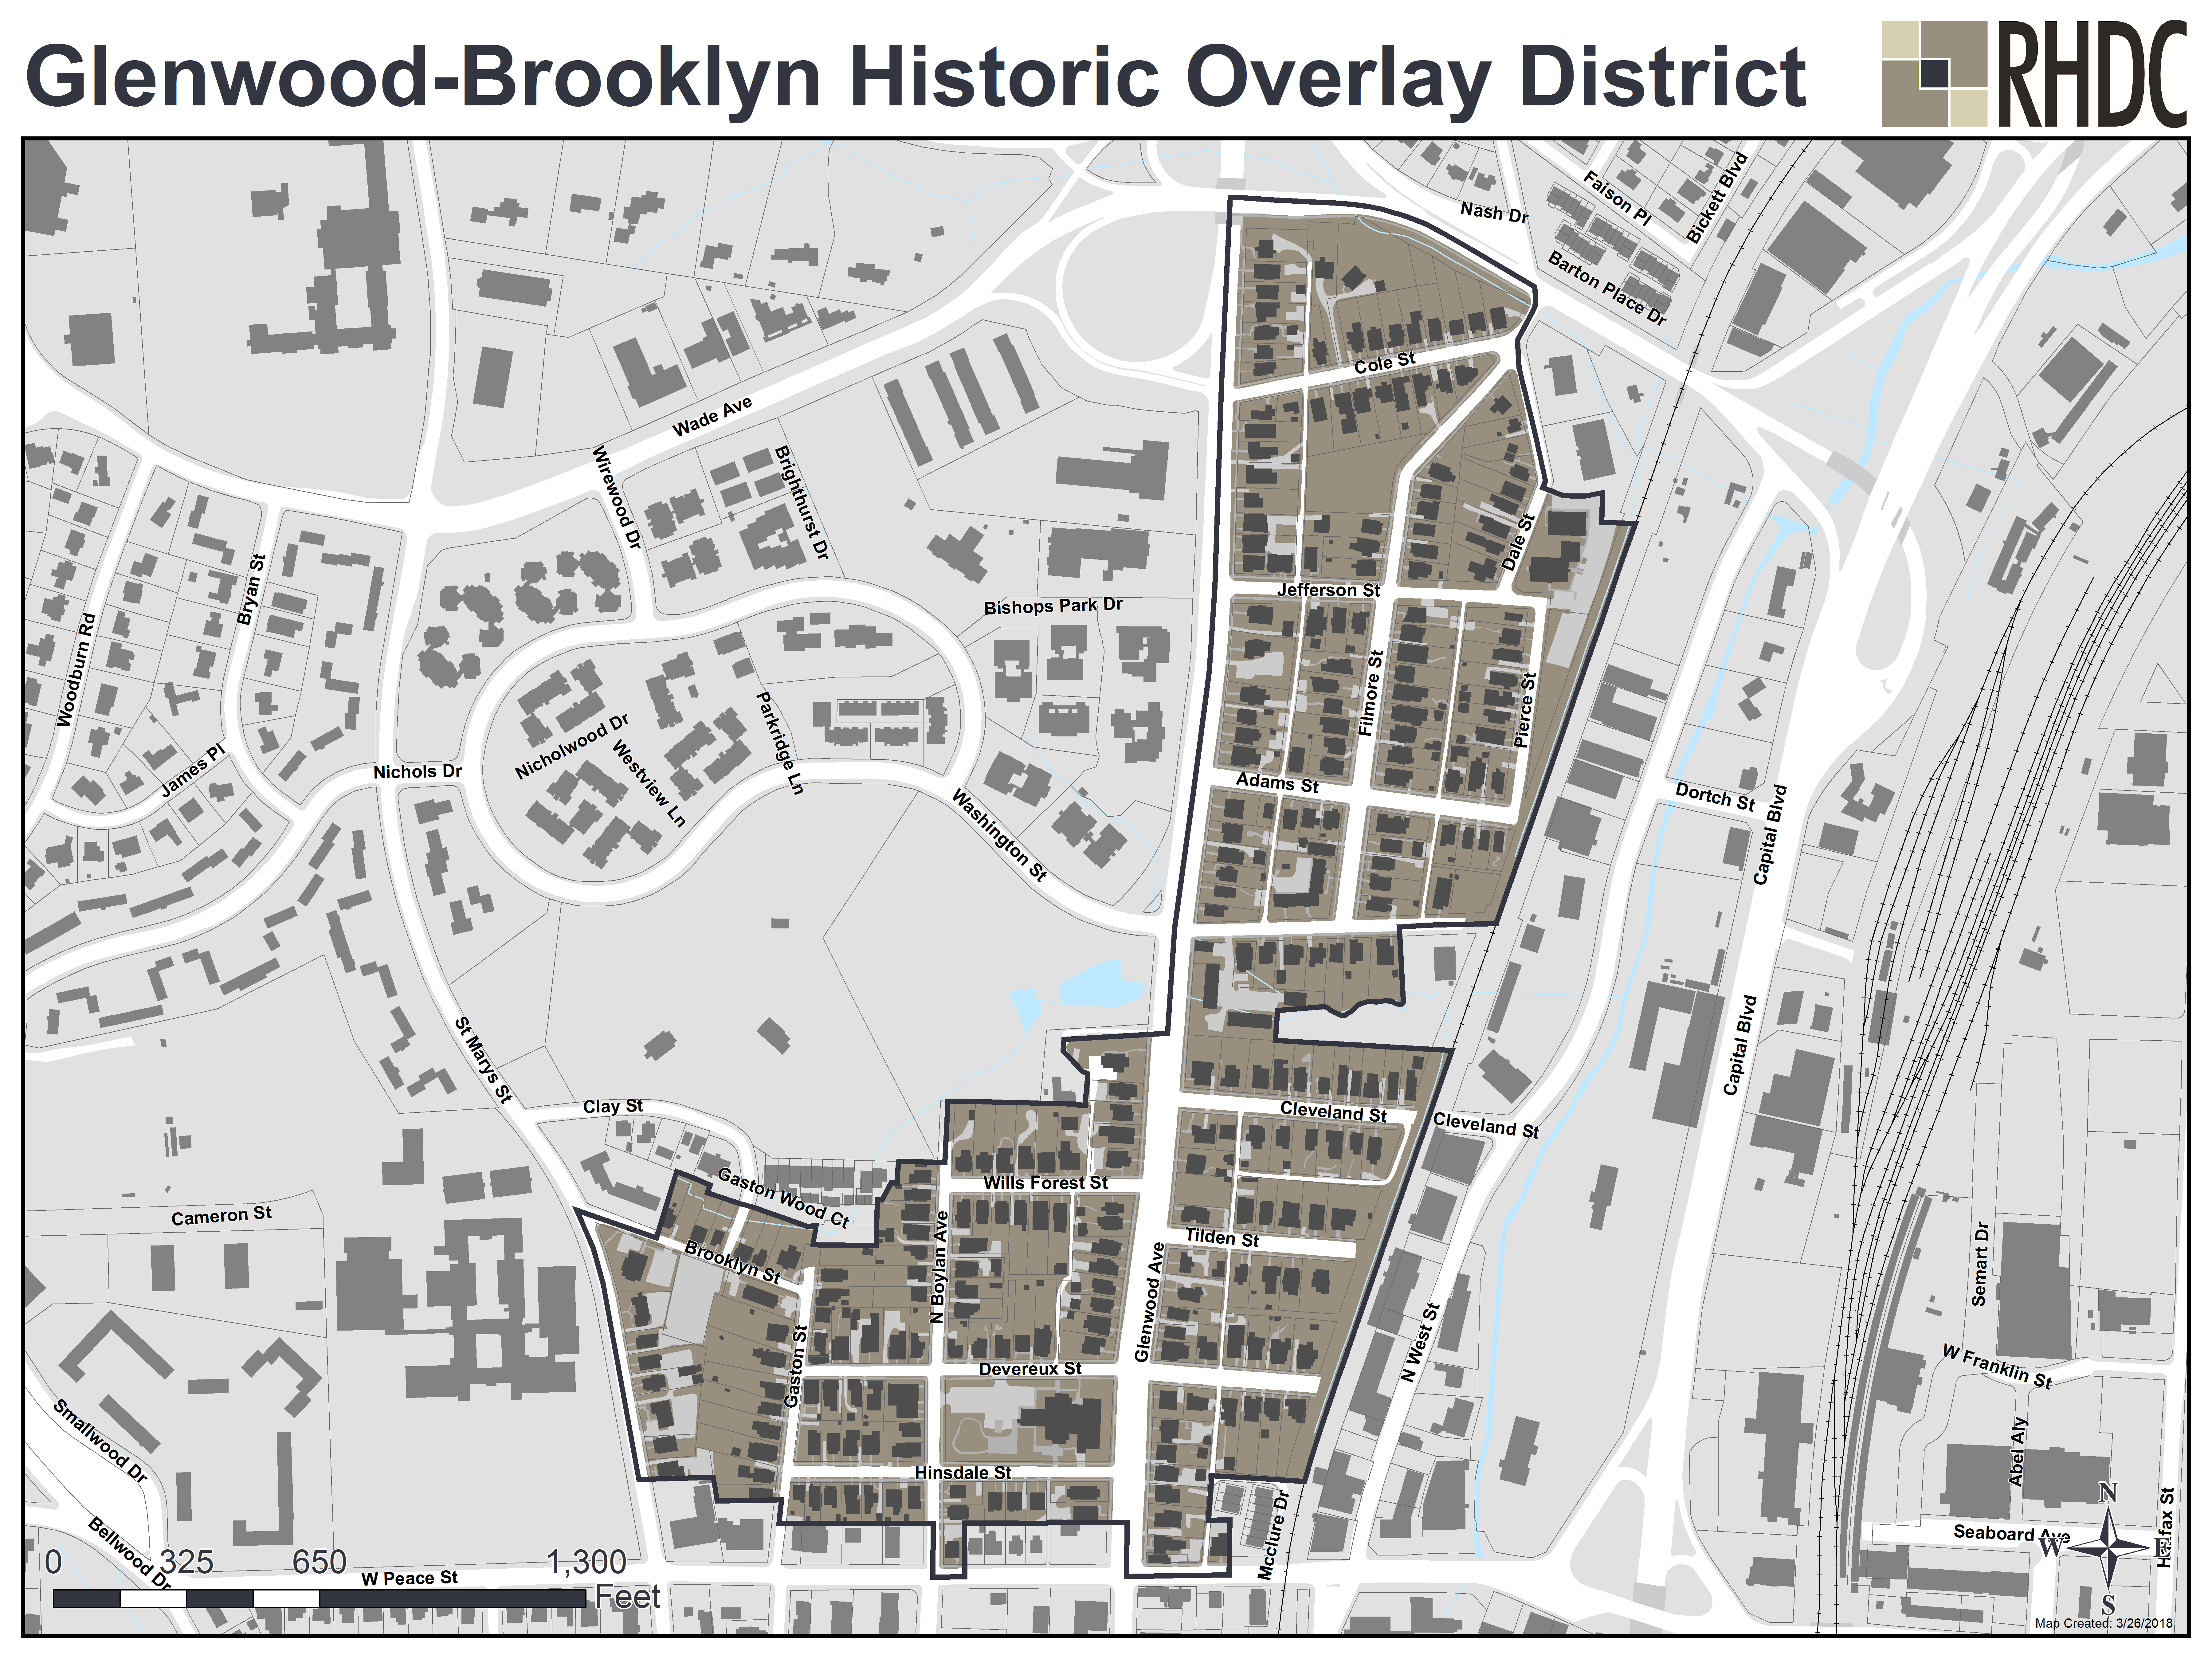 Glenwood-Brooklyn Historic District Overlay